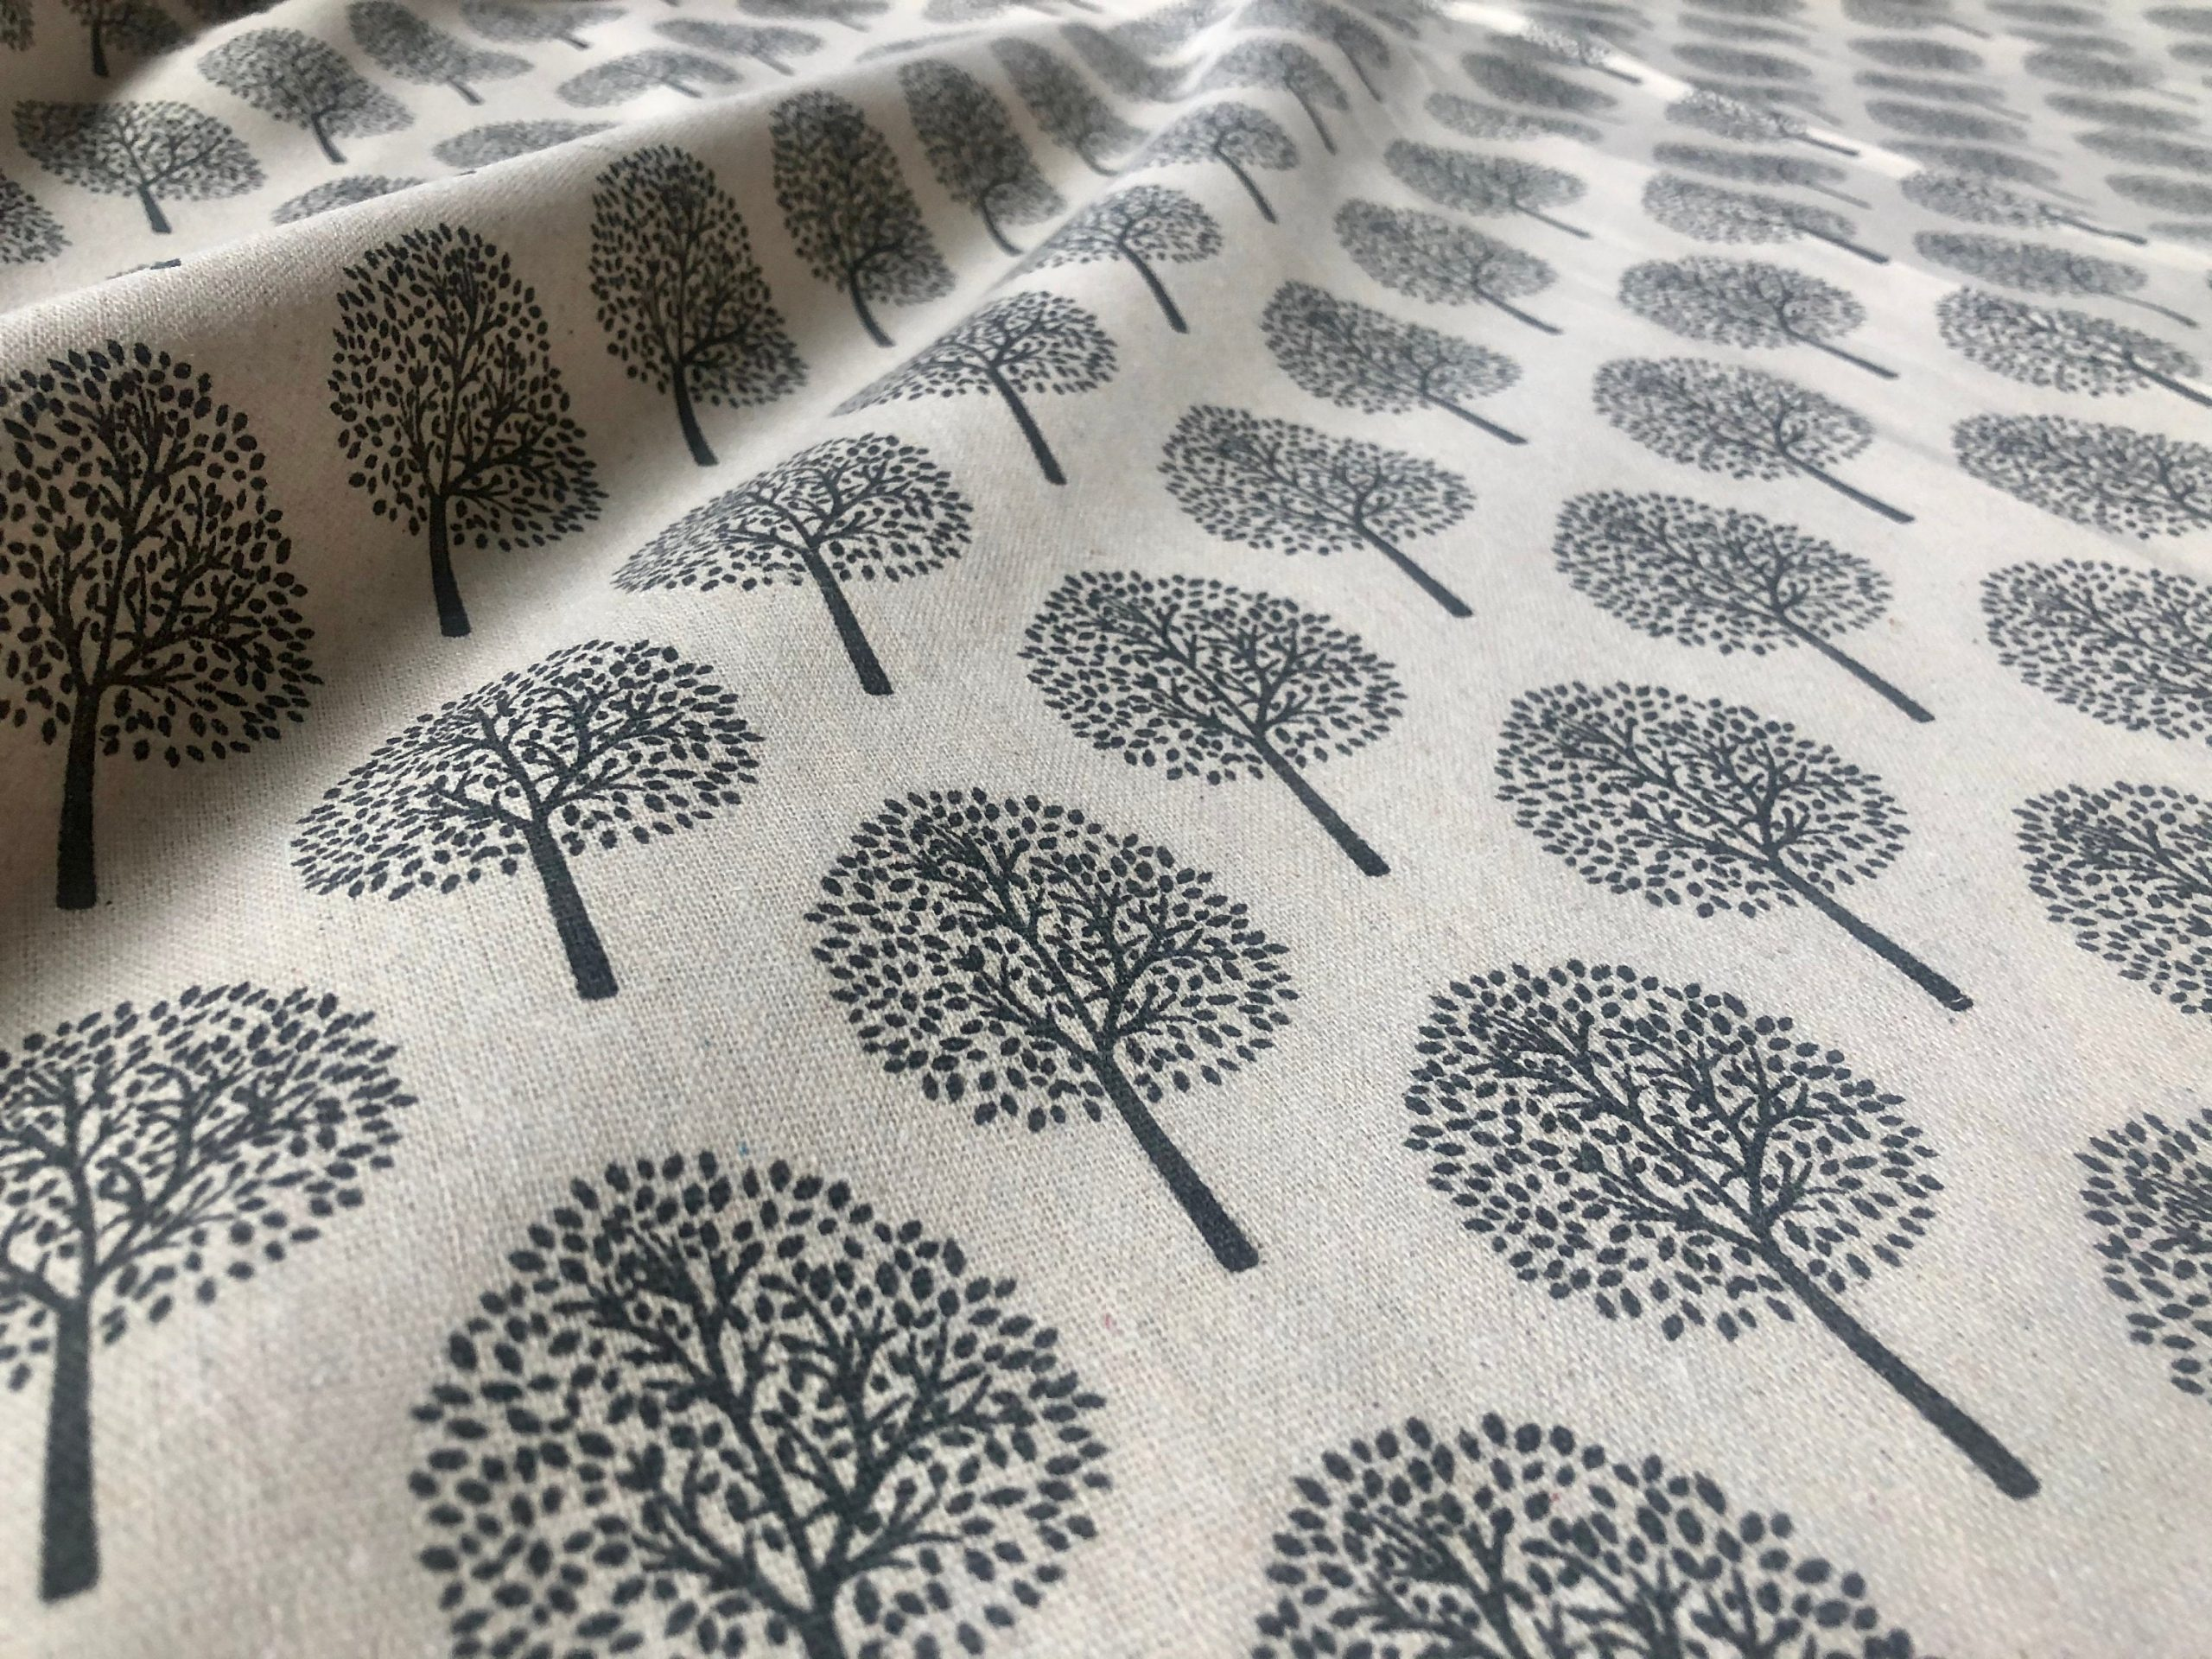 """BEIGE Mulberry Tree Cotton Linen Fabric Natural Light Grey Hessian Jute Material Home Decor Curtain Upholstery- 59""""/150cm Wide Canvas"""